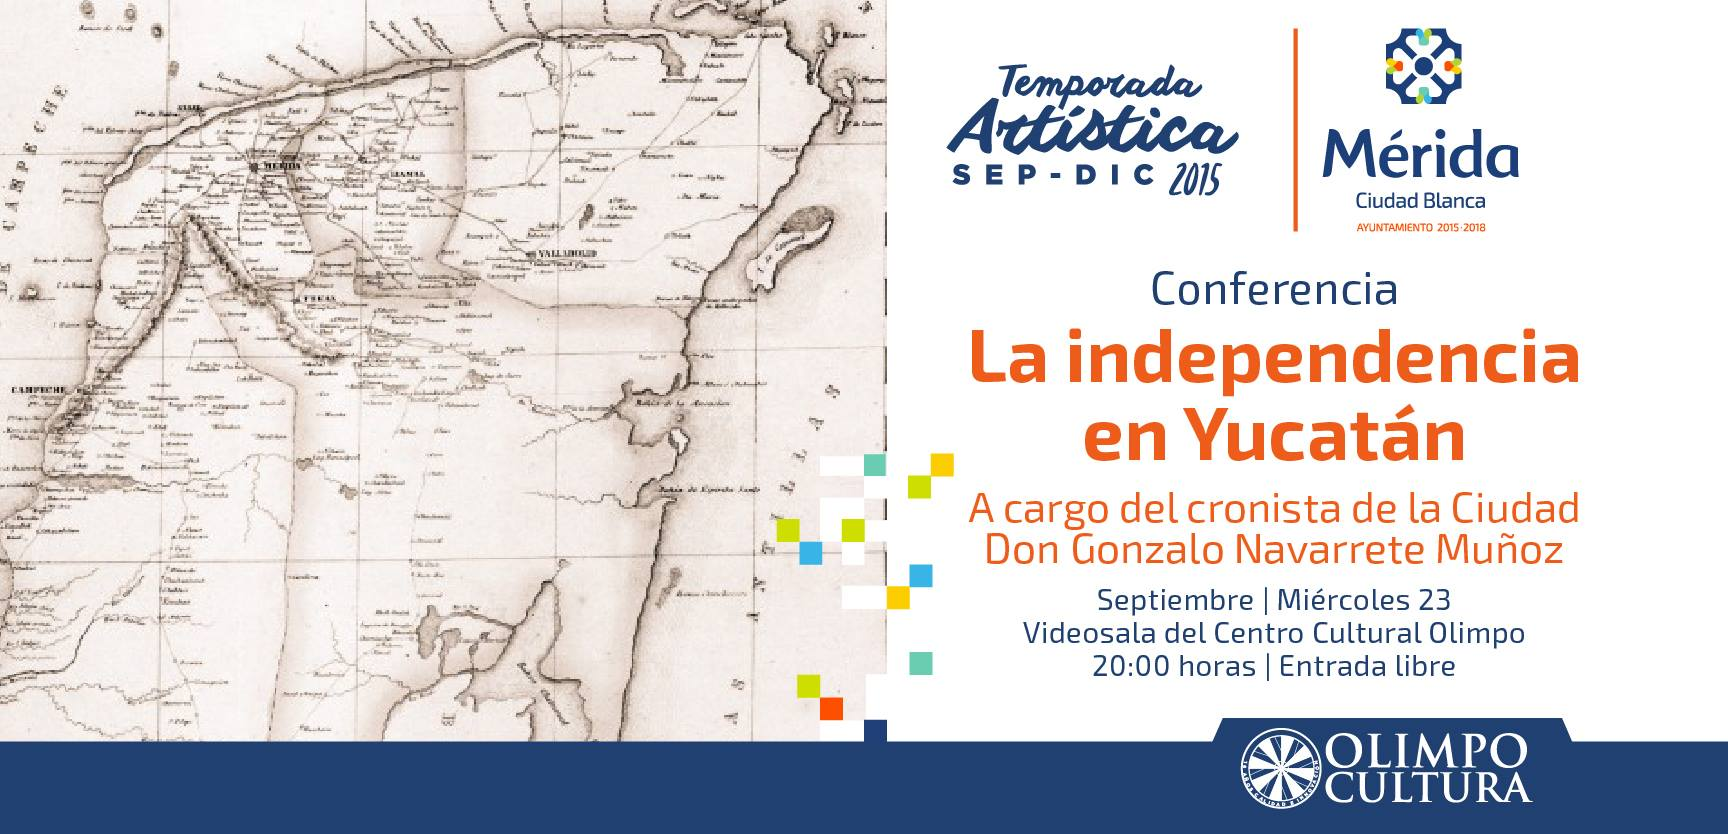 CONFERENCIA: LA INDEPENDENCIA EN YUCATÁN